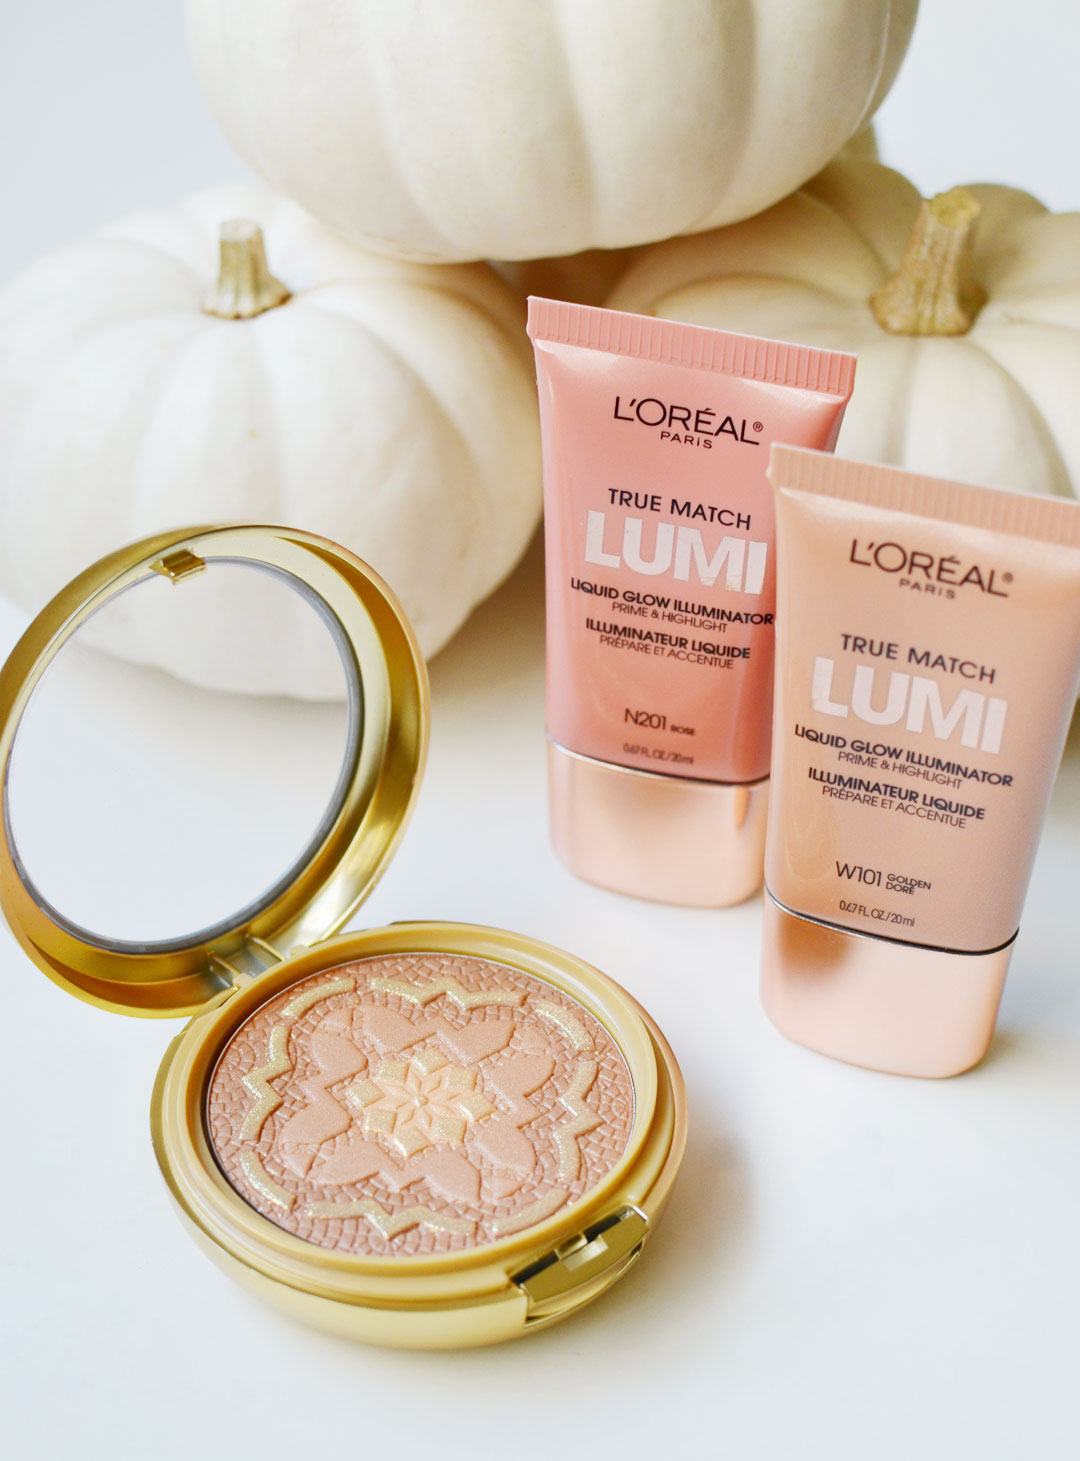 L'Oreal Paris Illuminator - theartmuse